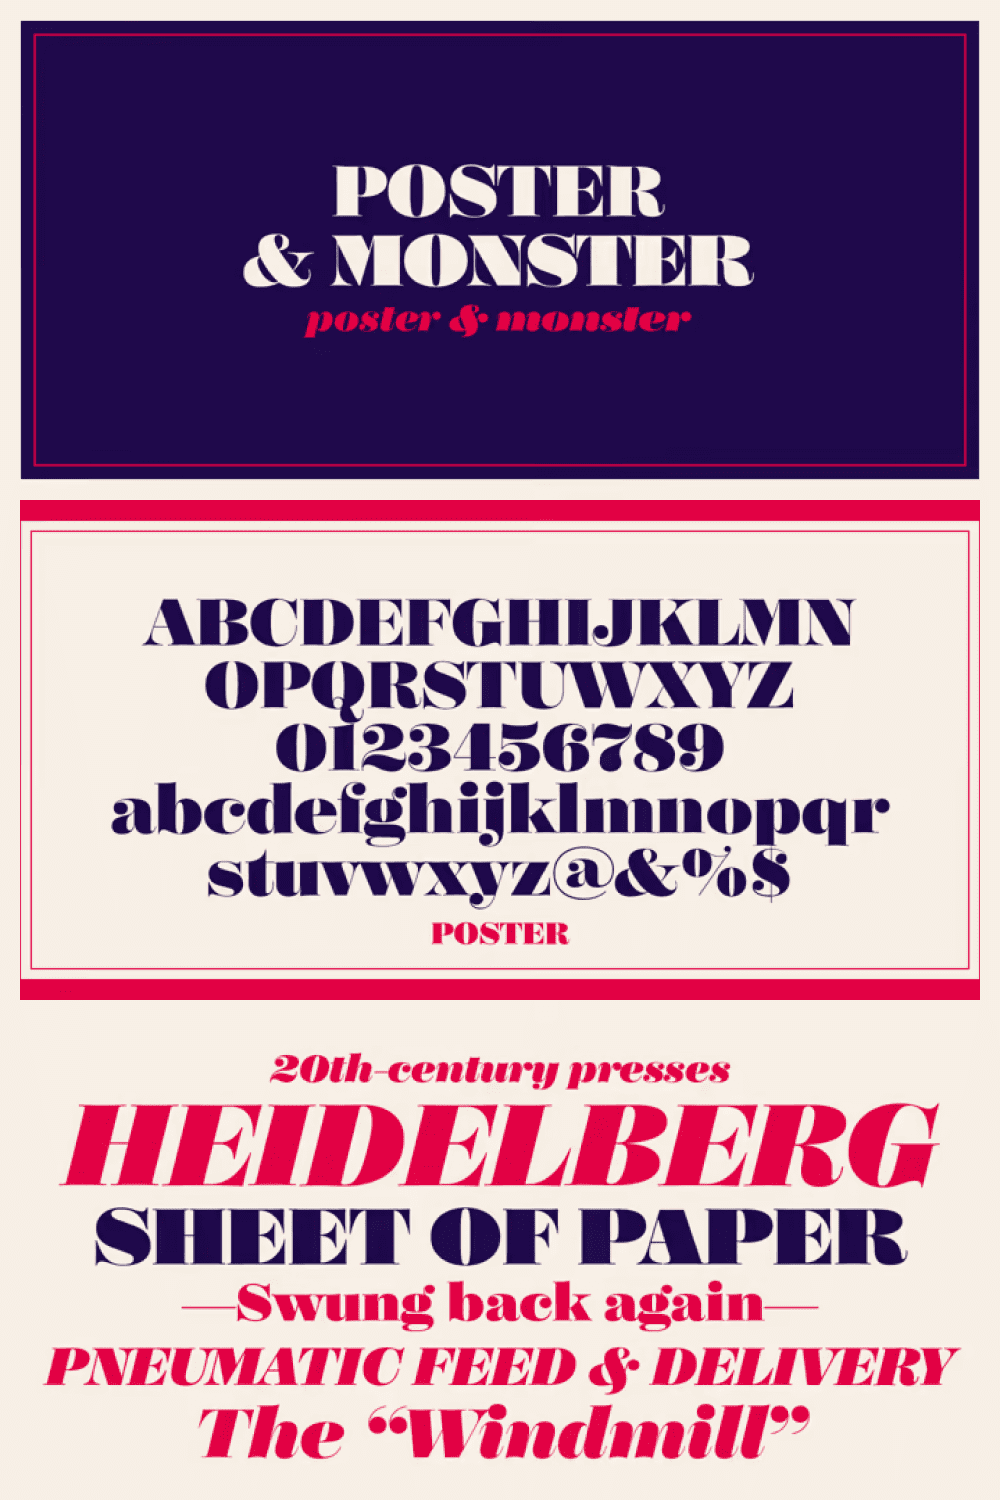 Vintage typeface with long letters and vibrant colors.